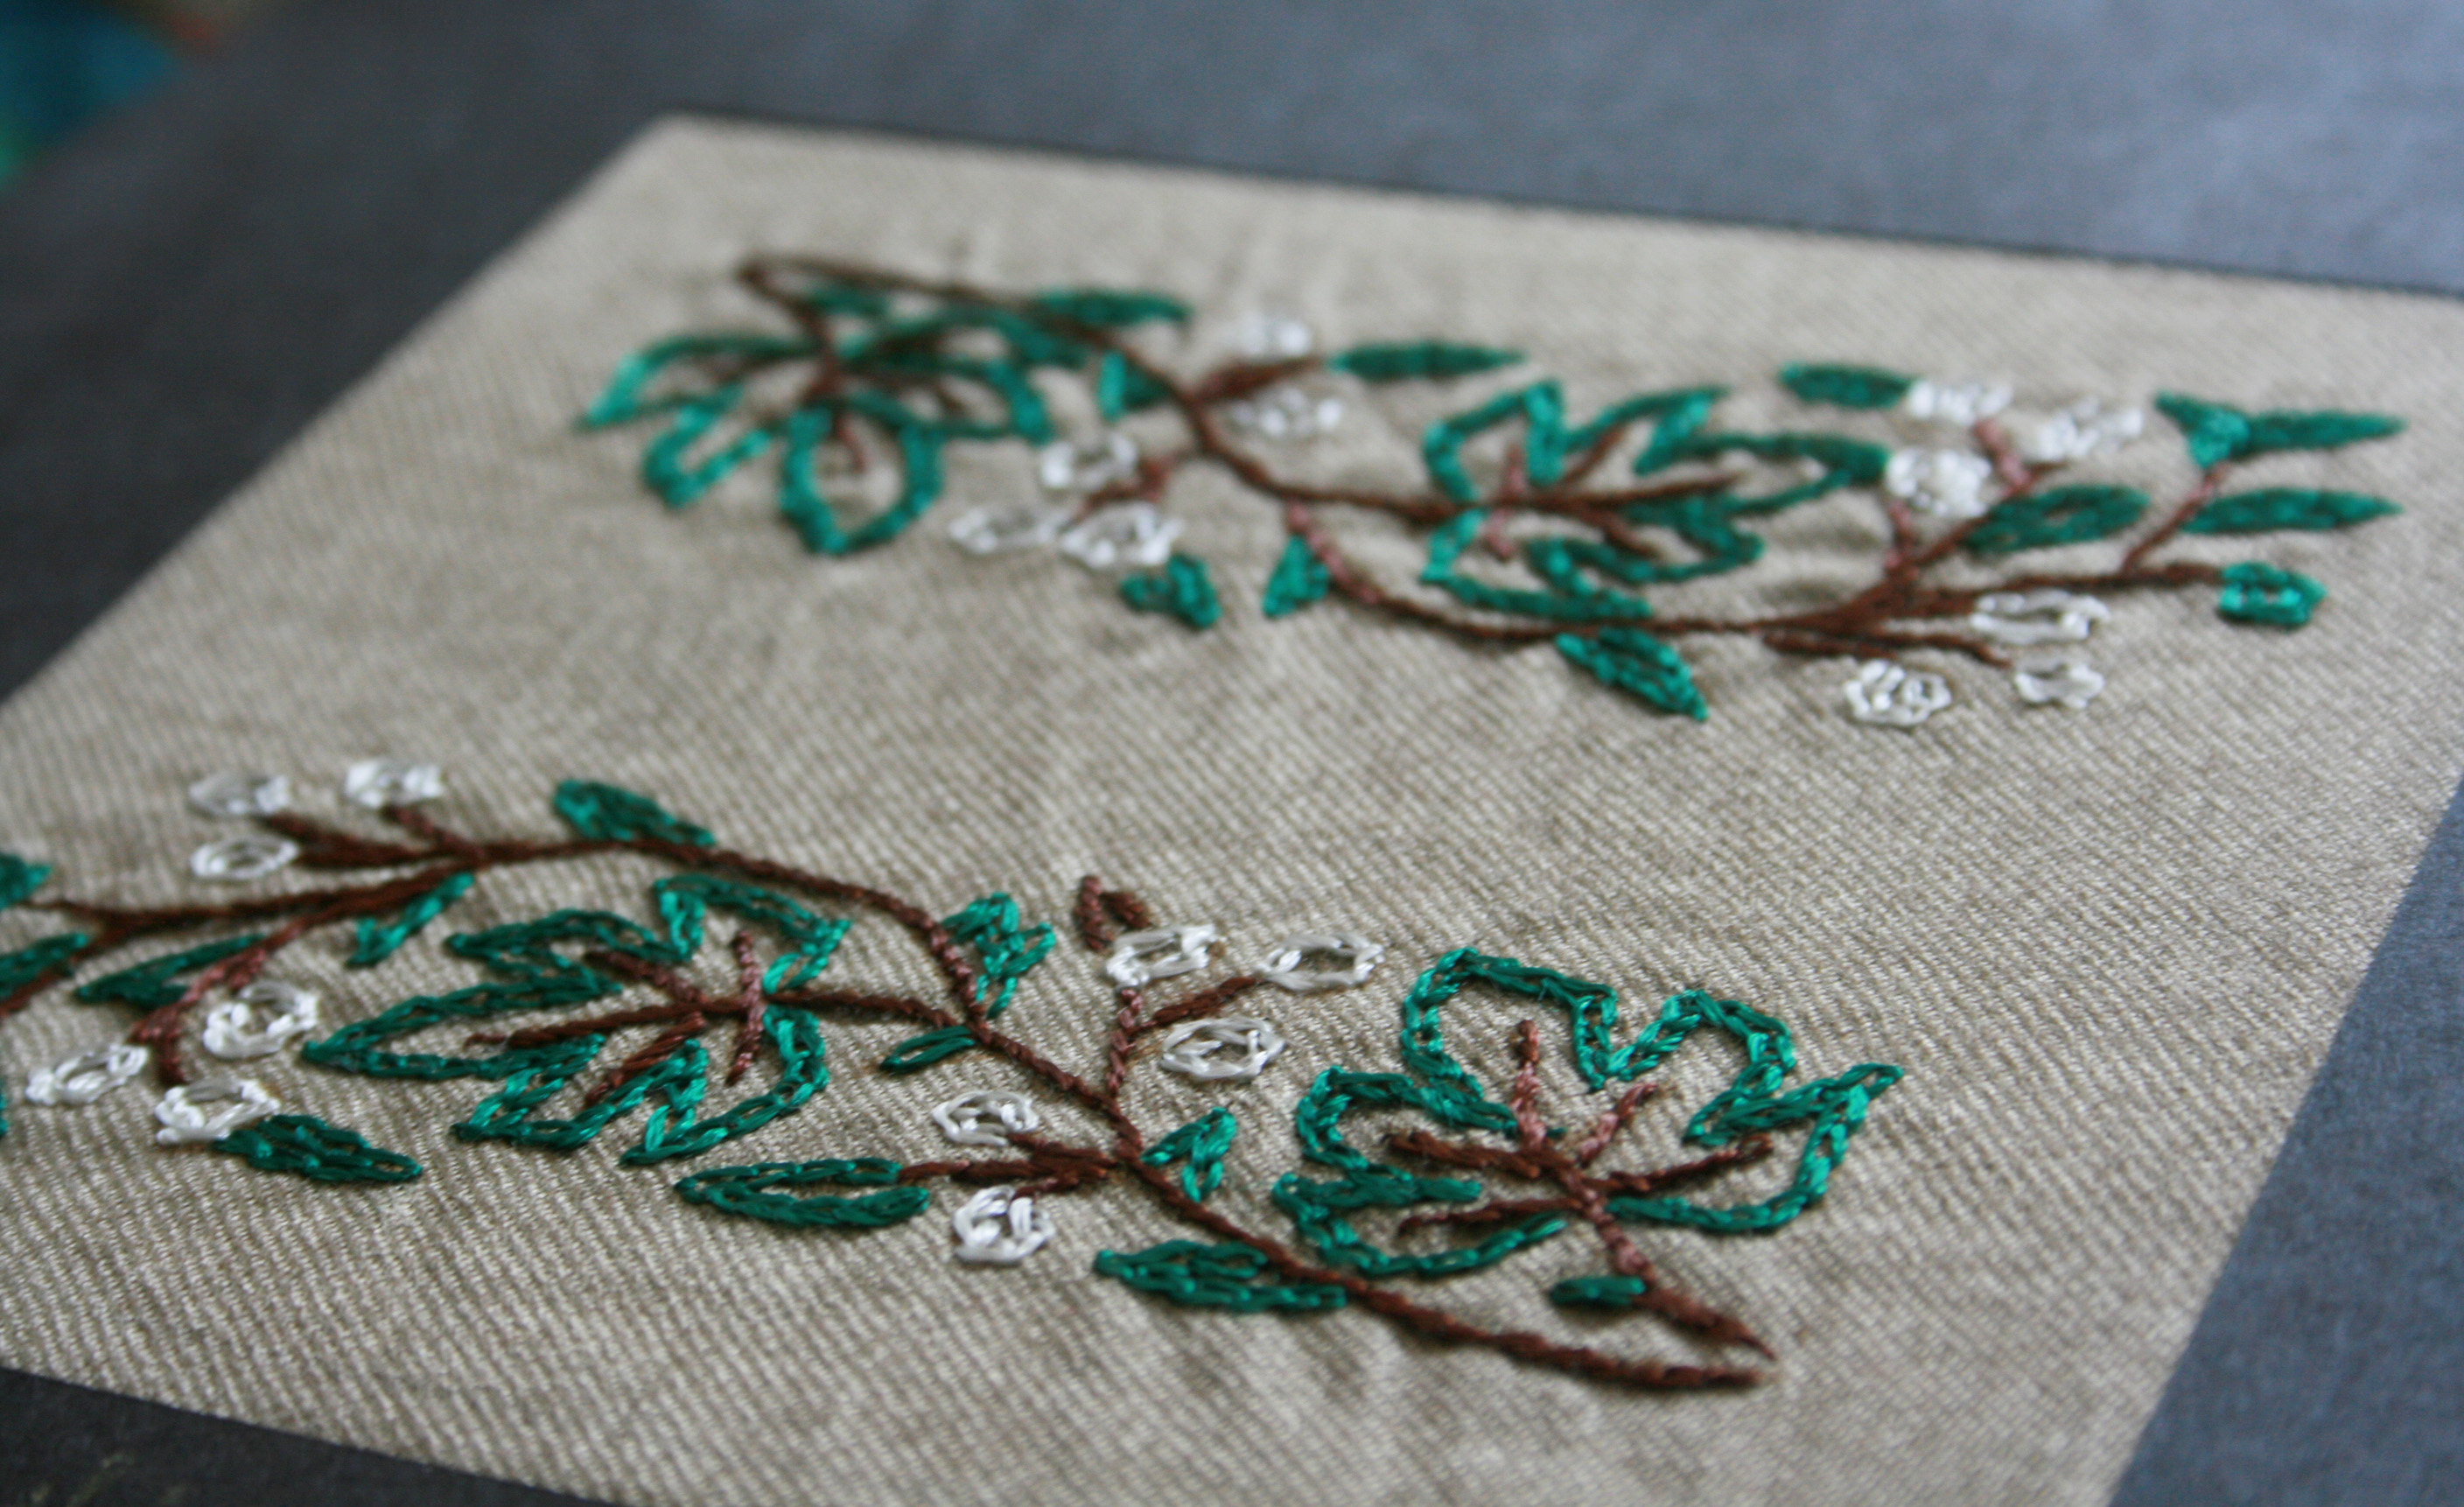 A popular form of needlework is embroidery